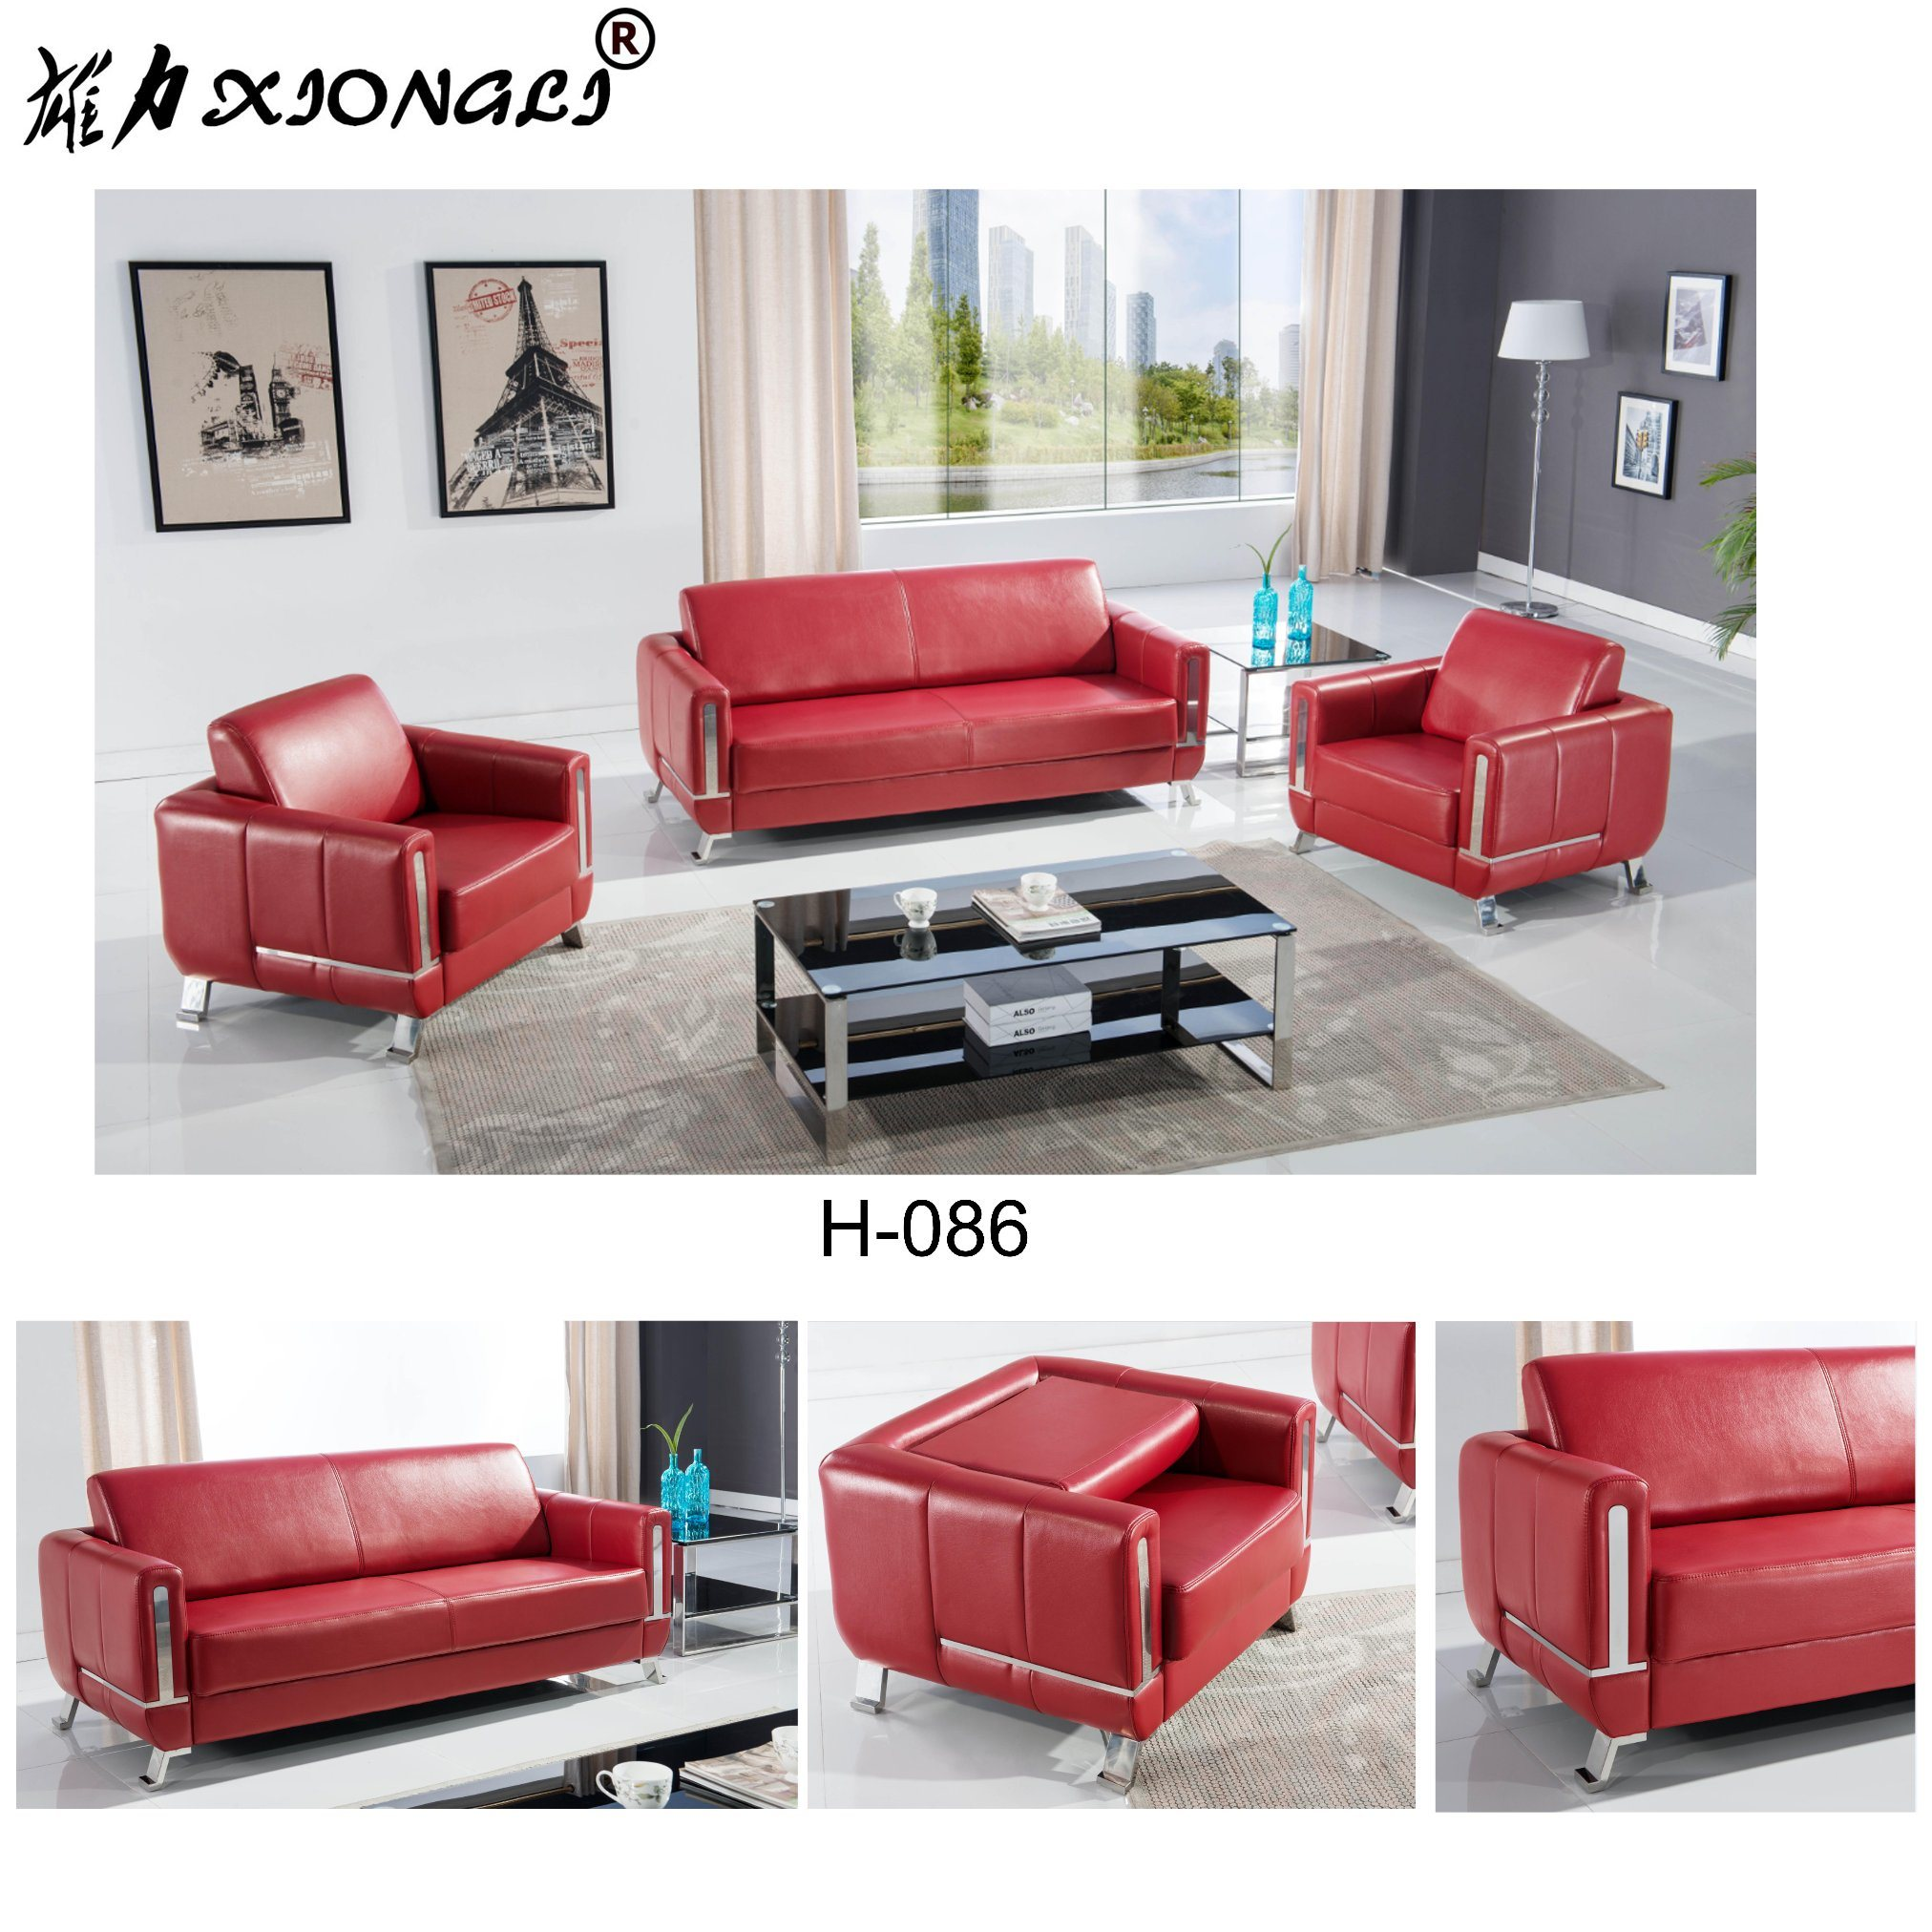 leather office couch. China H-086 Modern Office Executive Waiting Room Leather Sofa Set - Sofa, Couch